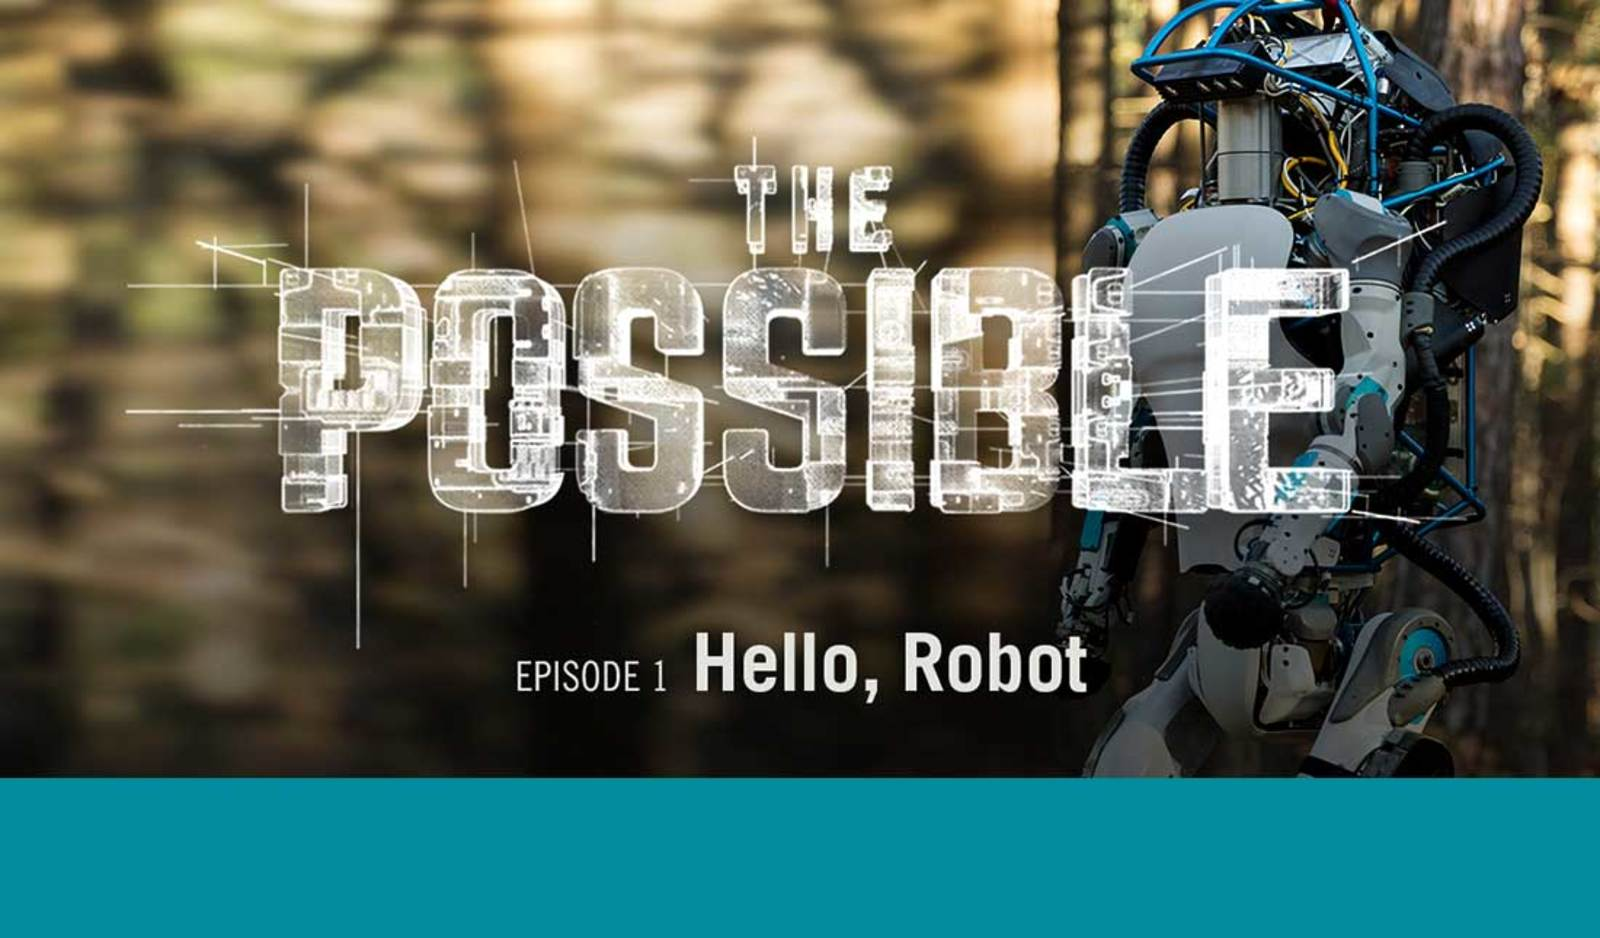 The Possible: Hello, Robot: A Virtual Reality (VR) film